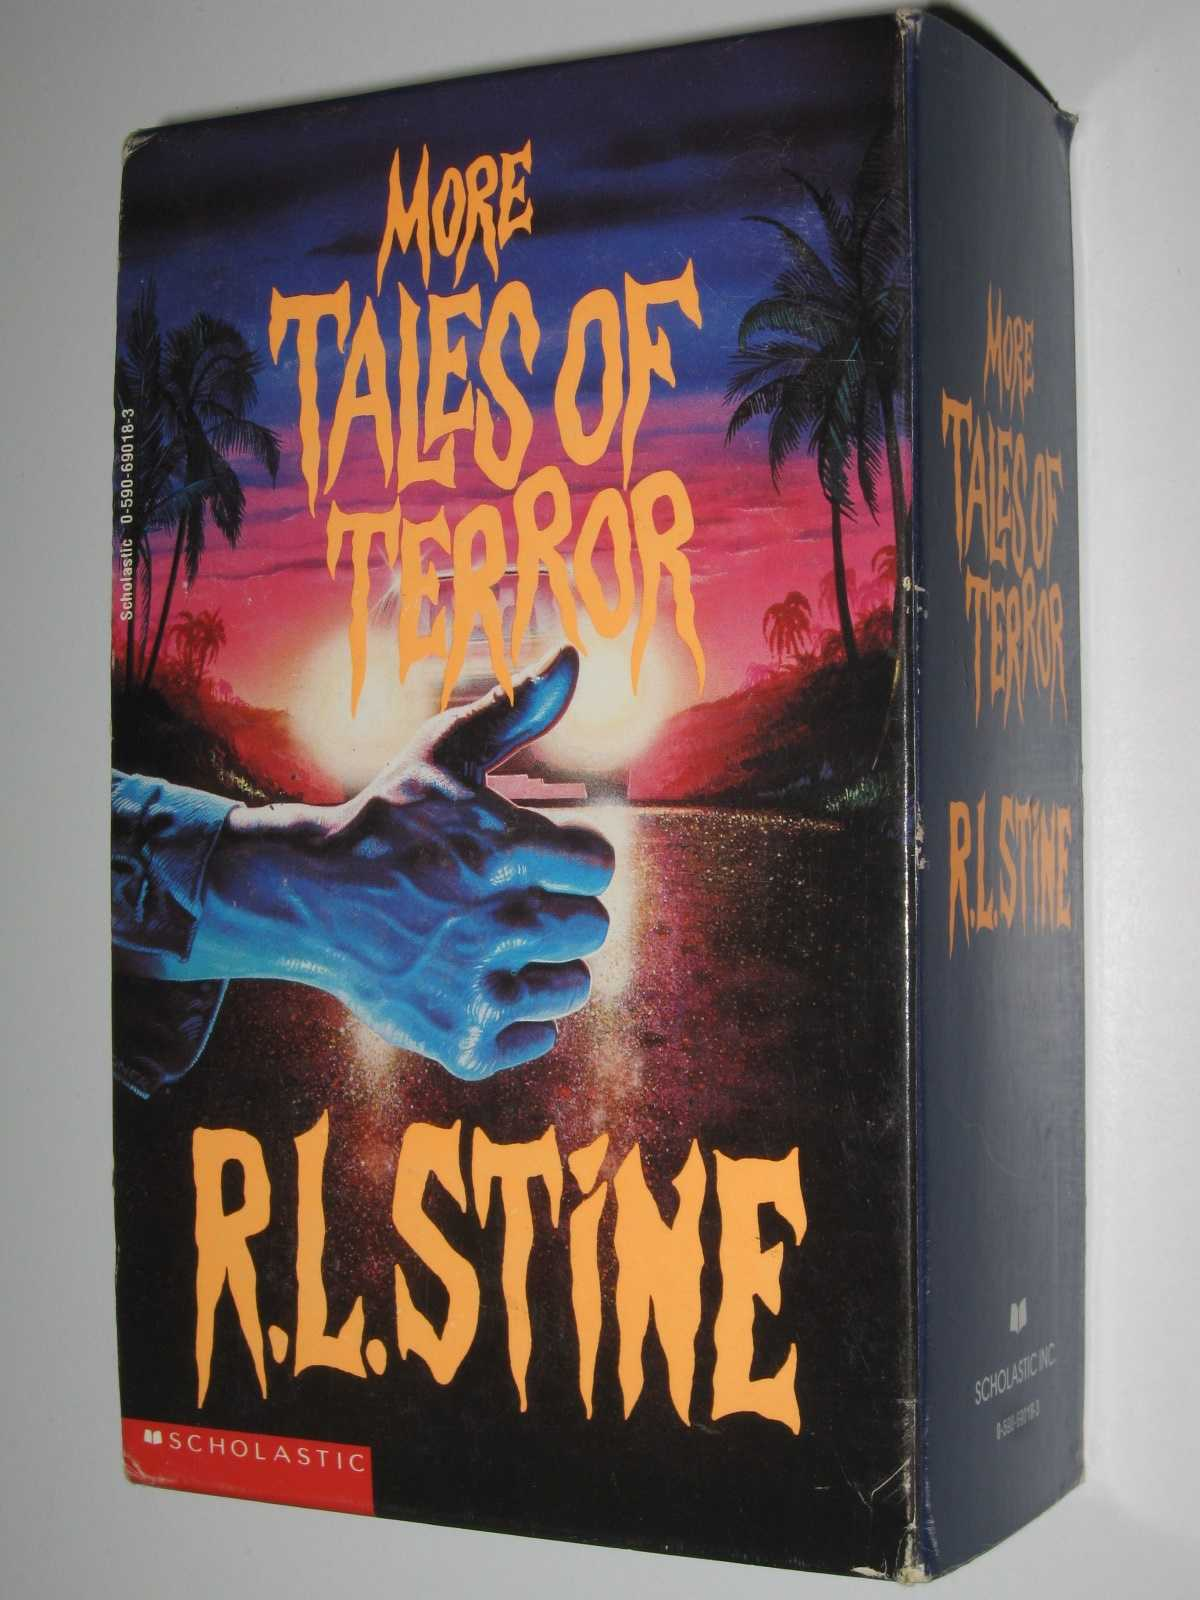 Image for More Tales of Terror Boxed Set : Beach Party + Beach House + The Hitchhiker + Hit and Run